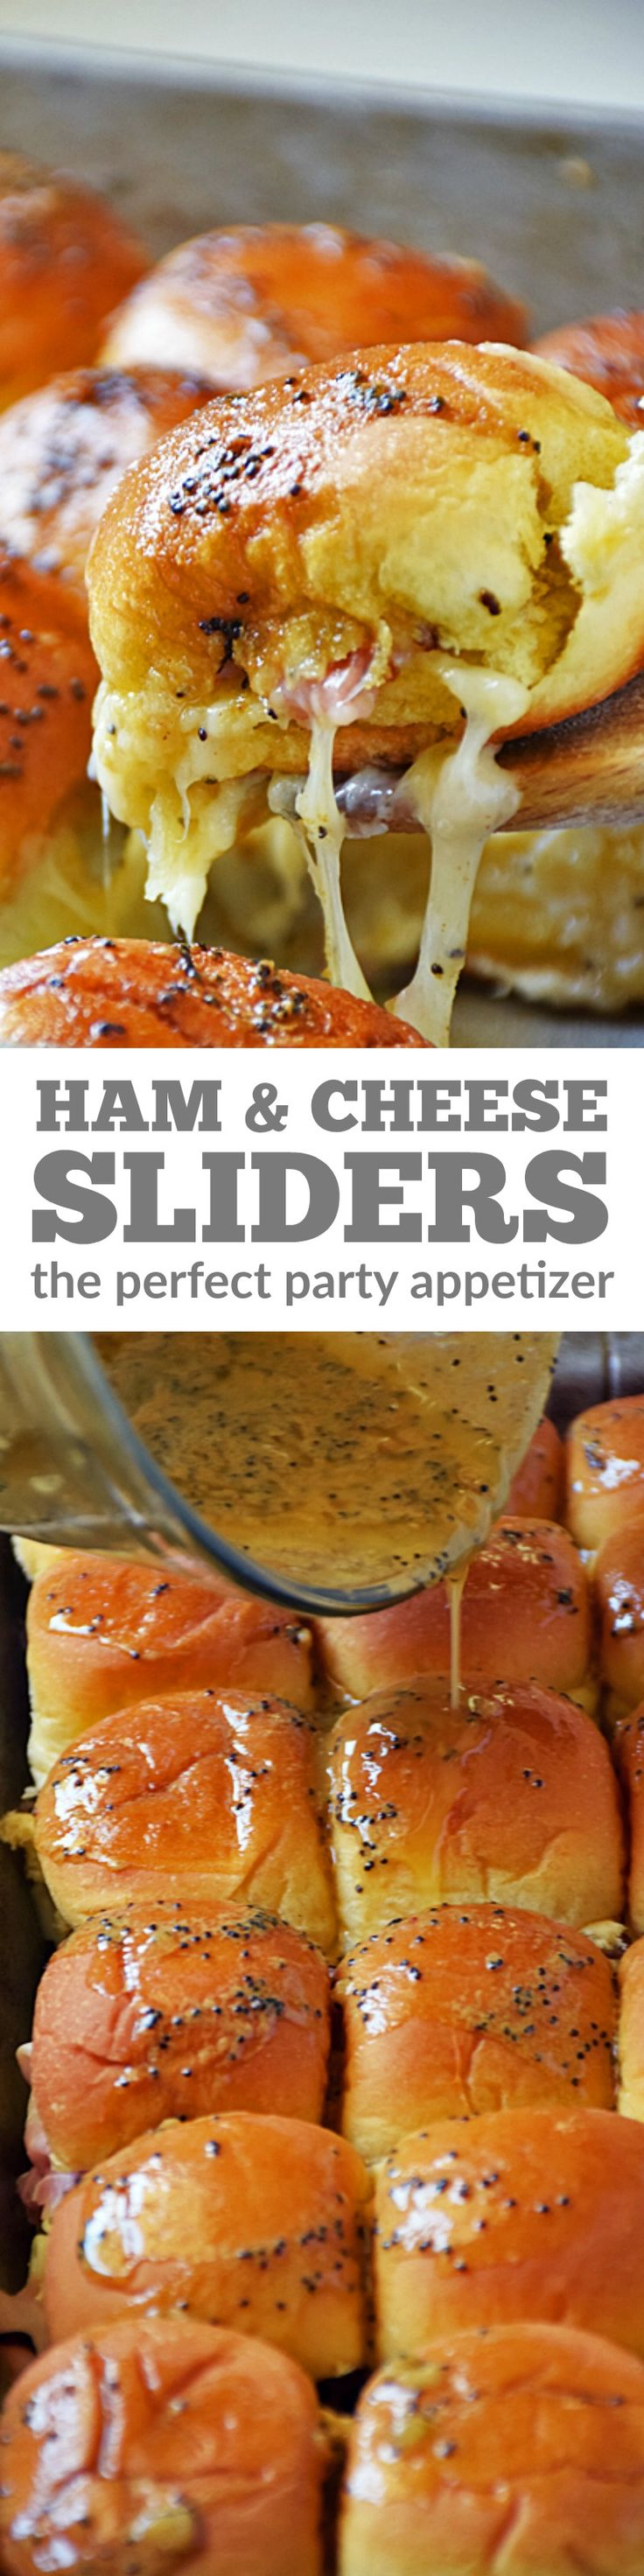 Baked Ham and Cheese Sliders - are the perfect party appetizer this summer! This easy recipe, loaded with ham and cheese, is topped with a buttery mustard glaze to give these sliders a flavor explosion and then baked to ooey gooey cheesy deliciousness!